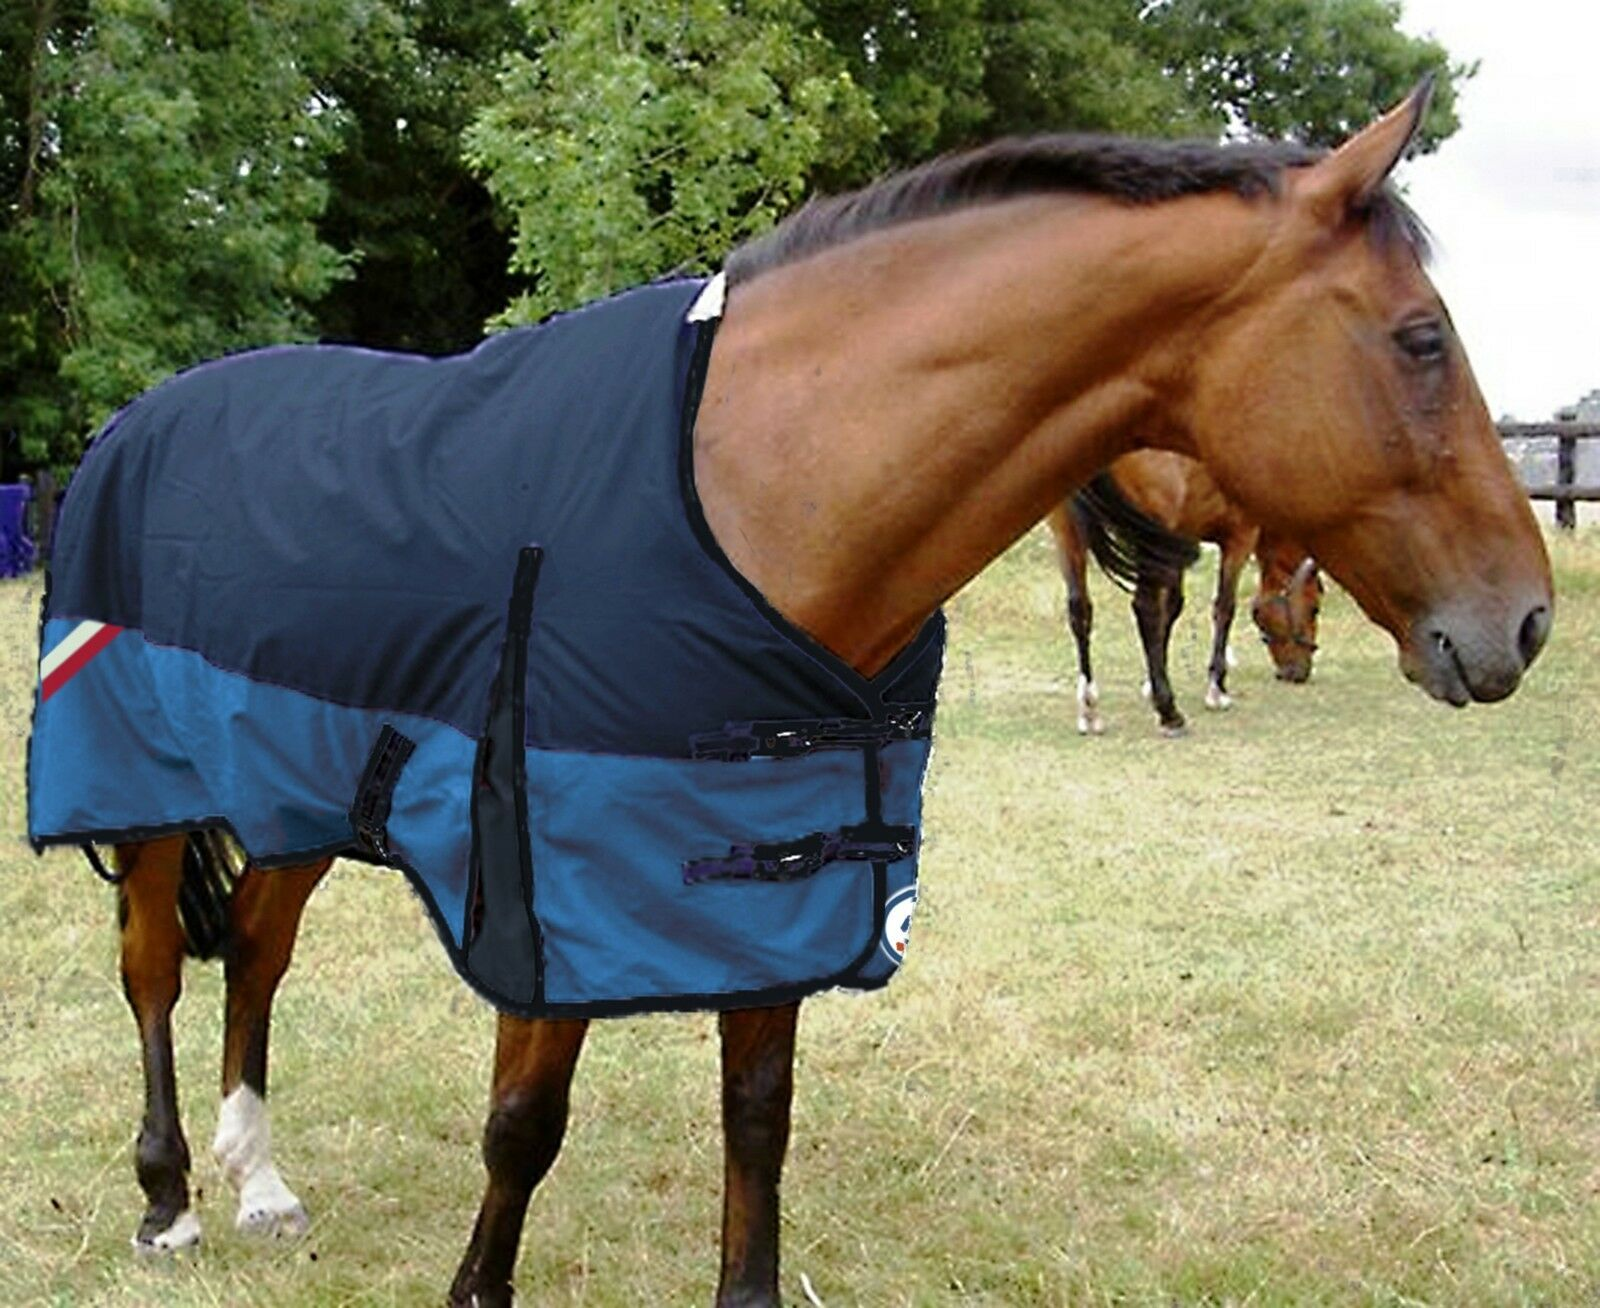 GEE TAC HORSE Lightweight TURNOUT RUG FLEECE LINED WITH A STRONG 1200D OUTER